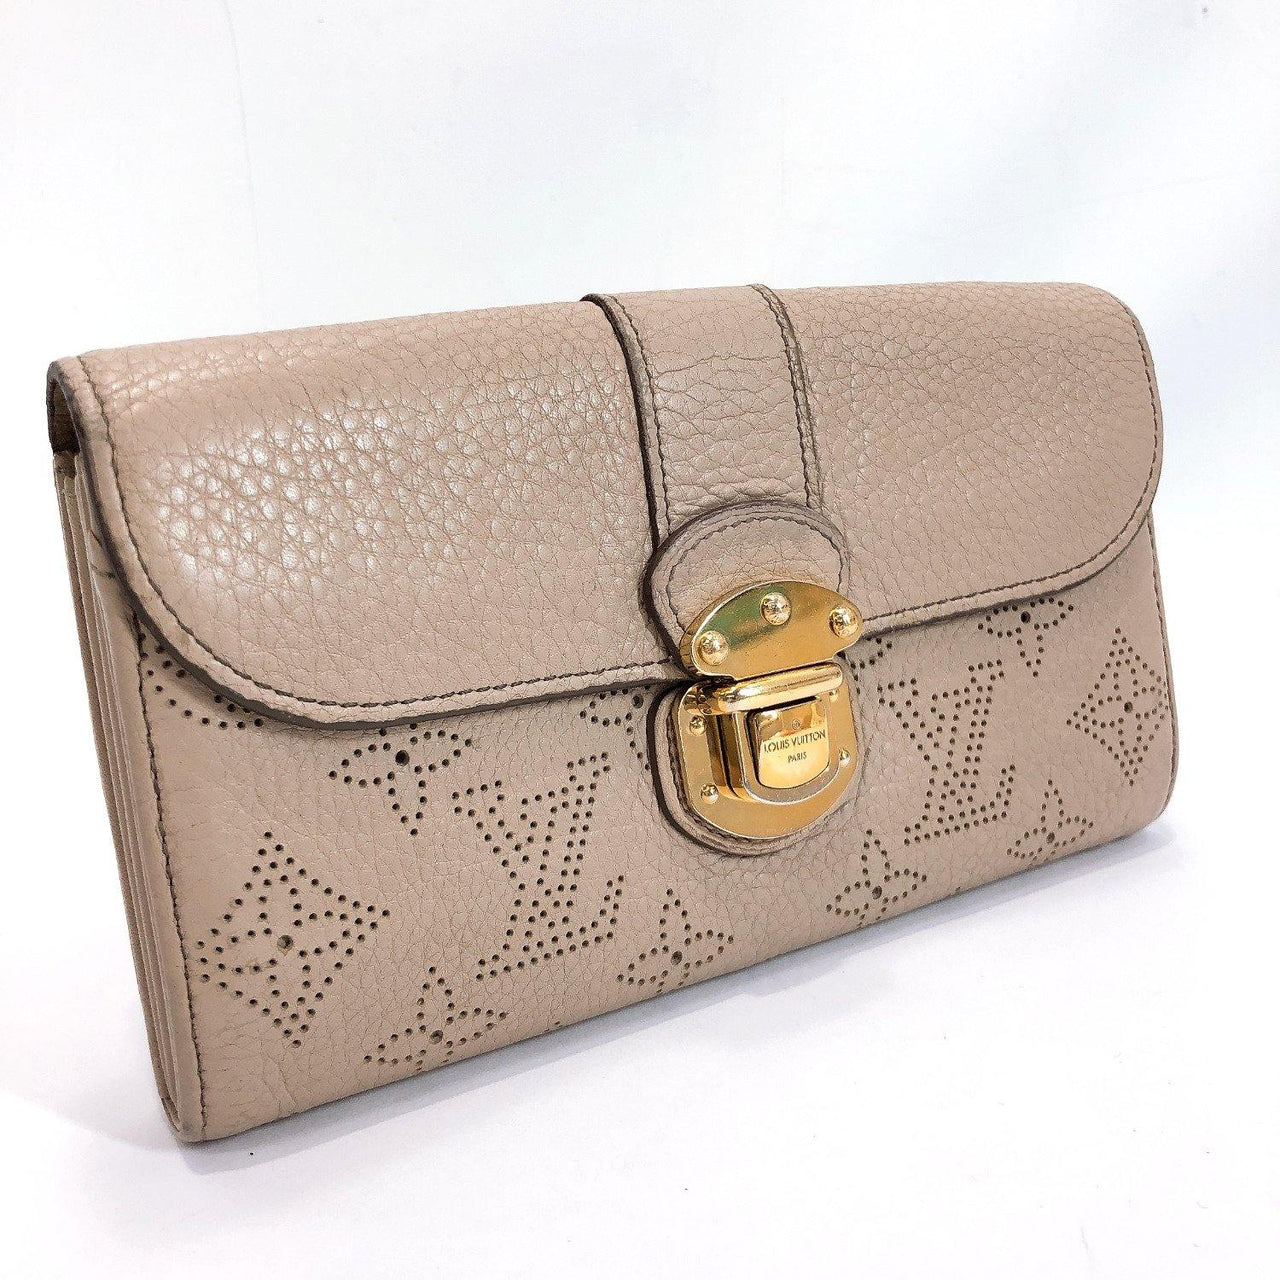 LOUIS VUITTON purse M58094 Portefeiulle Iris Monogram Mahina beige Sable Women Used - JP-BRANDS.com